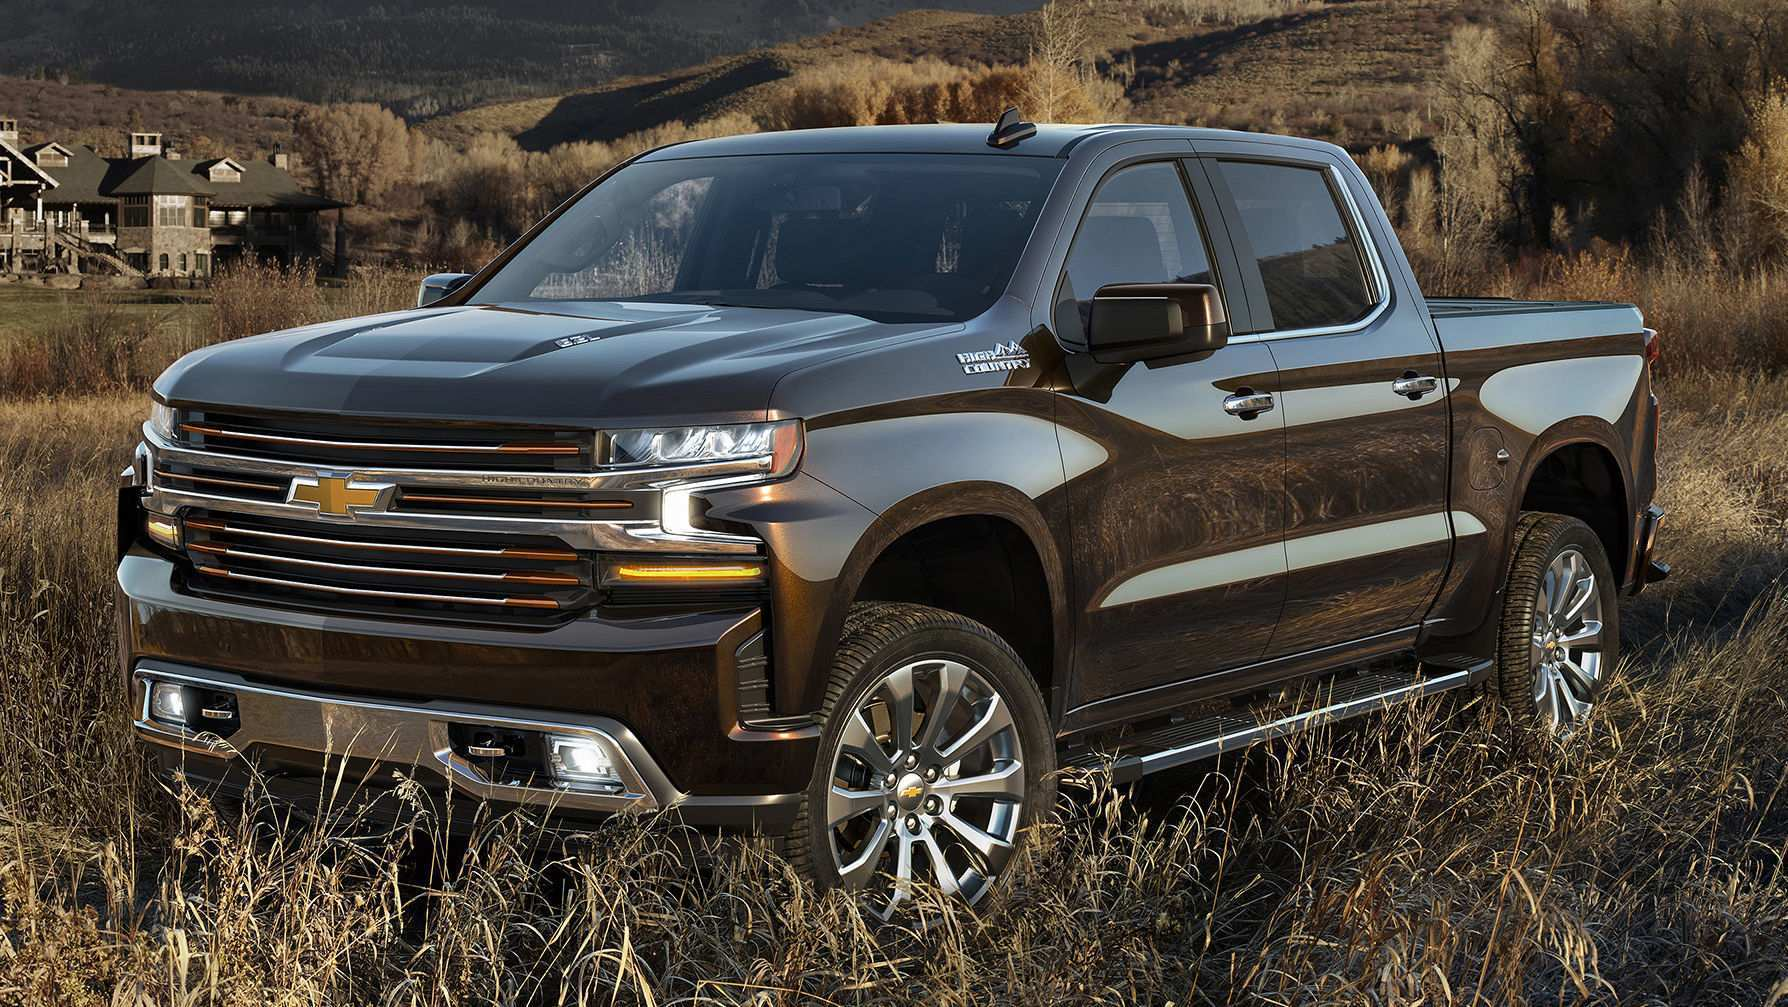 42 New Chevrolet High Country 2020 New Concept